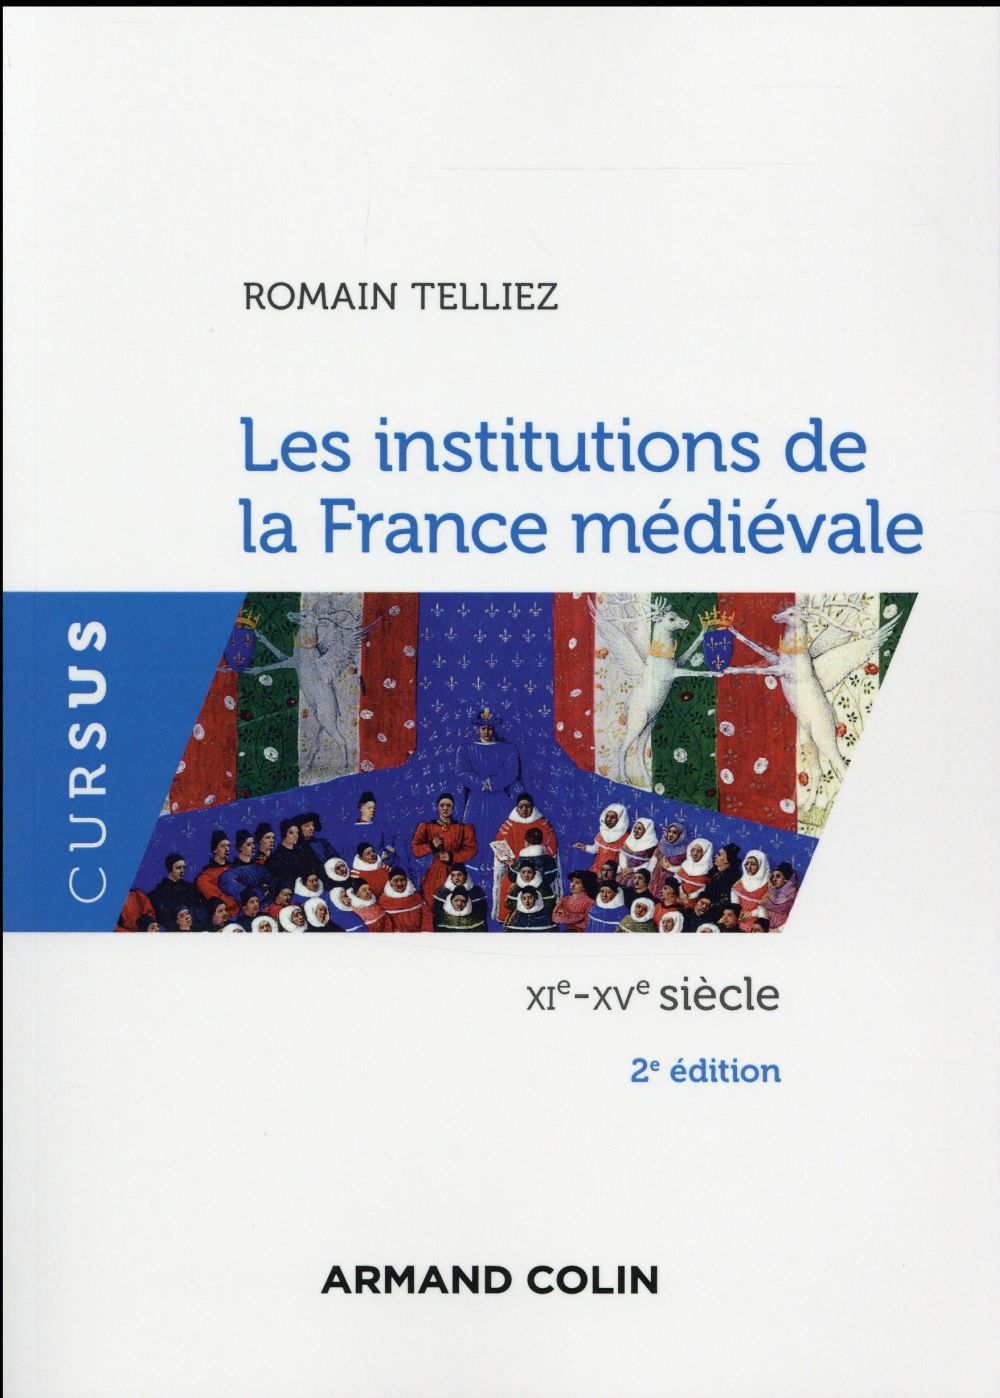 Telliez Romain - LES INSTITUTIONS DE LA FRANCE MEDIEVALE - 2E ED. - XIE-XVE SIECLE